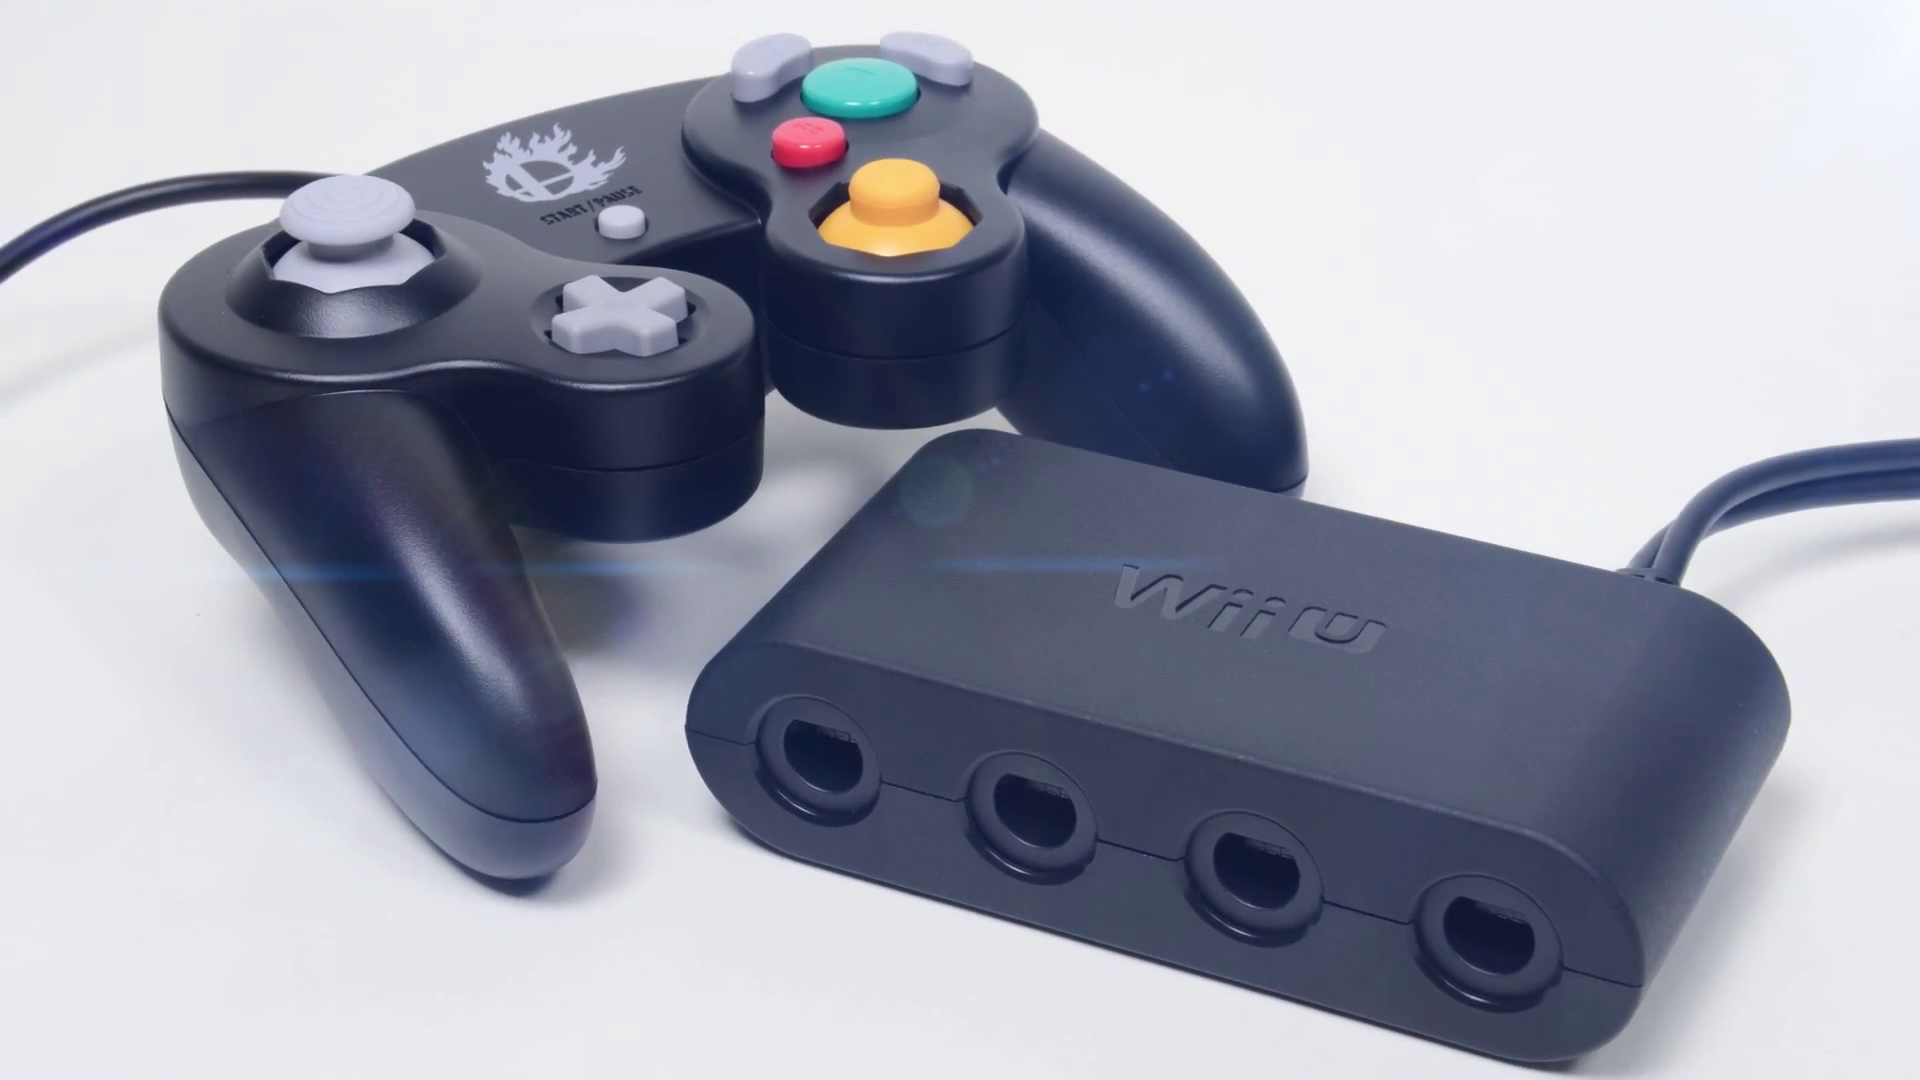 GameCube Controller Adapter and New GameCube Controller